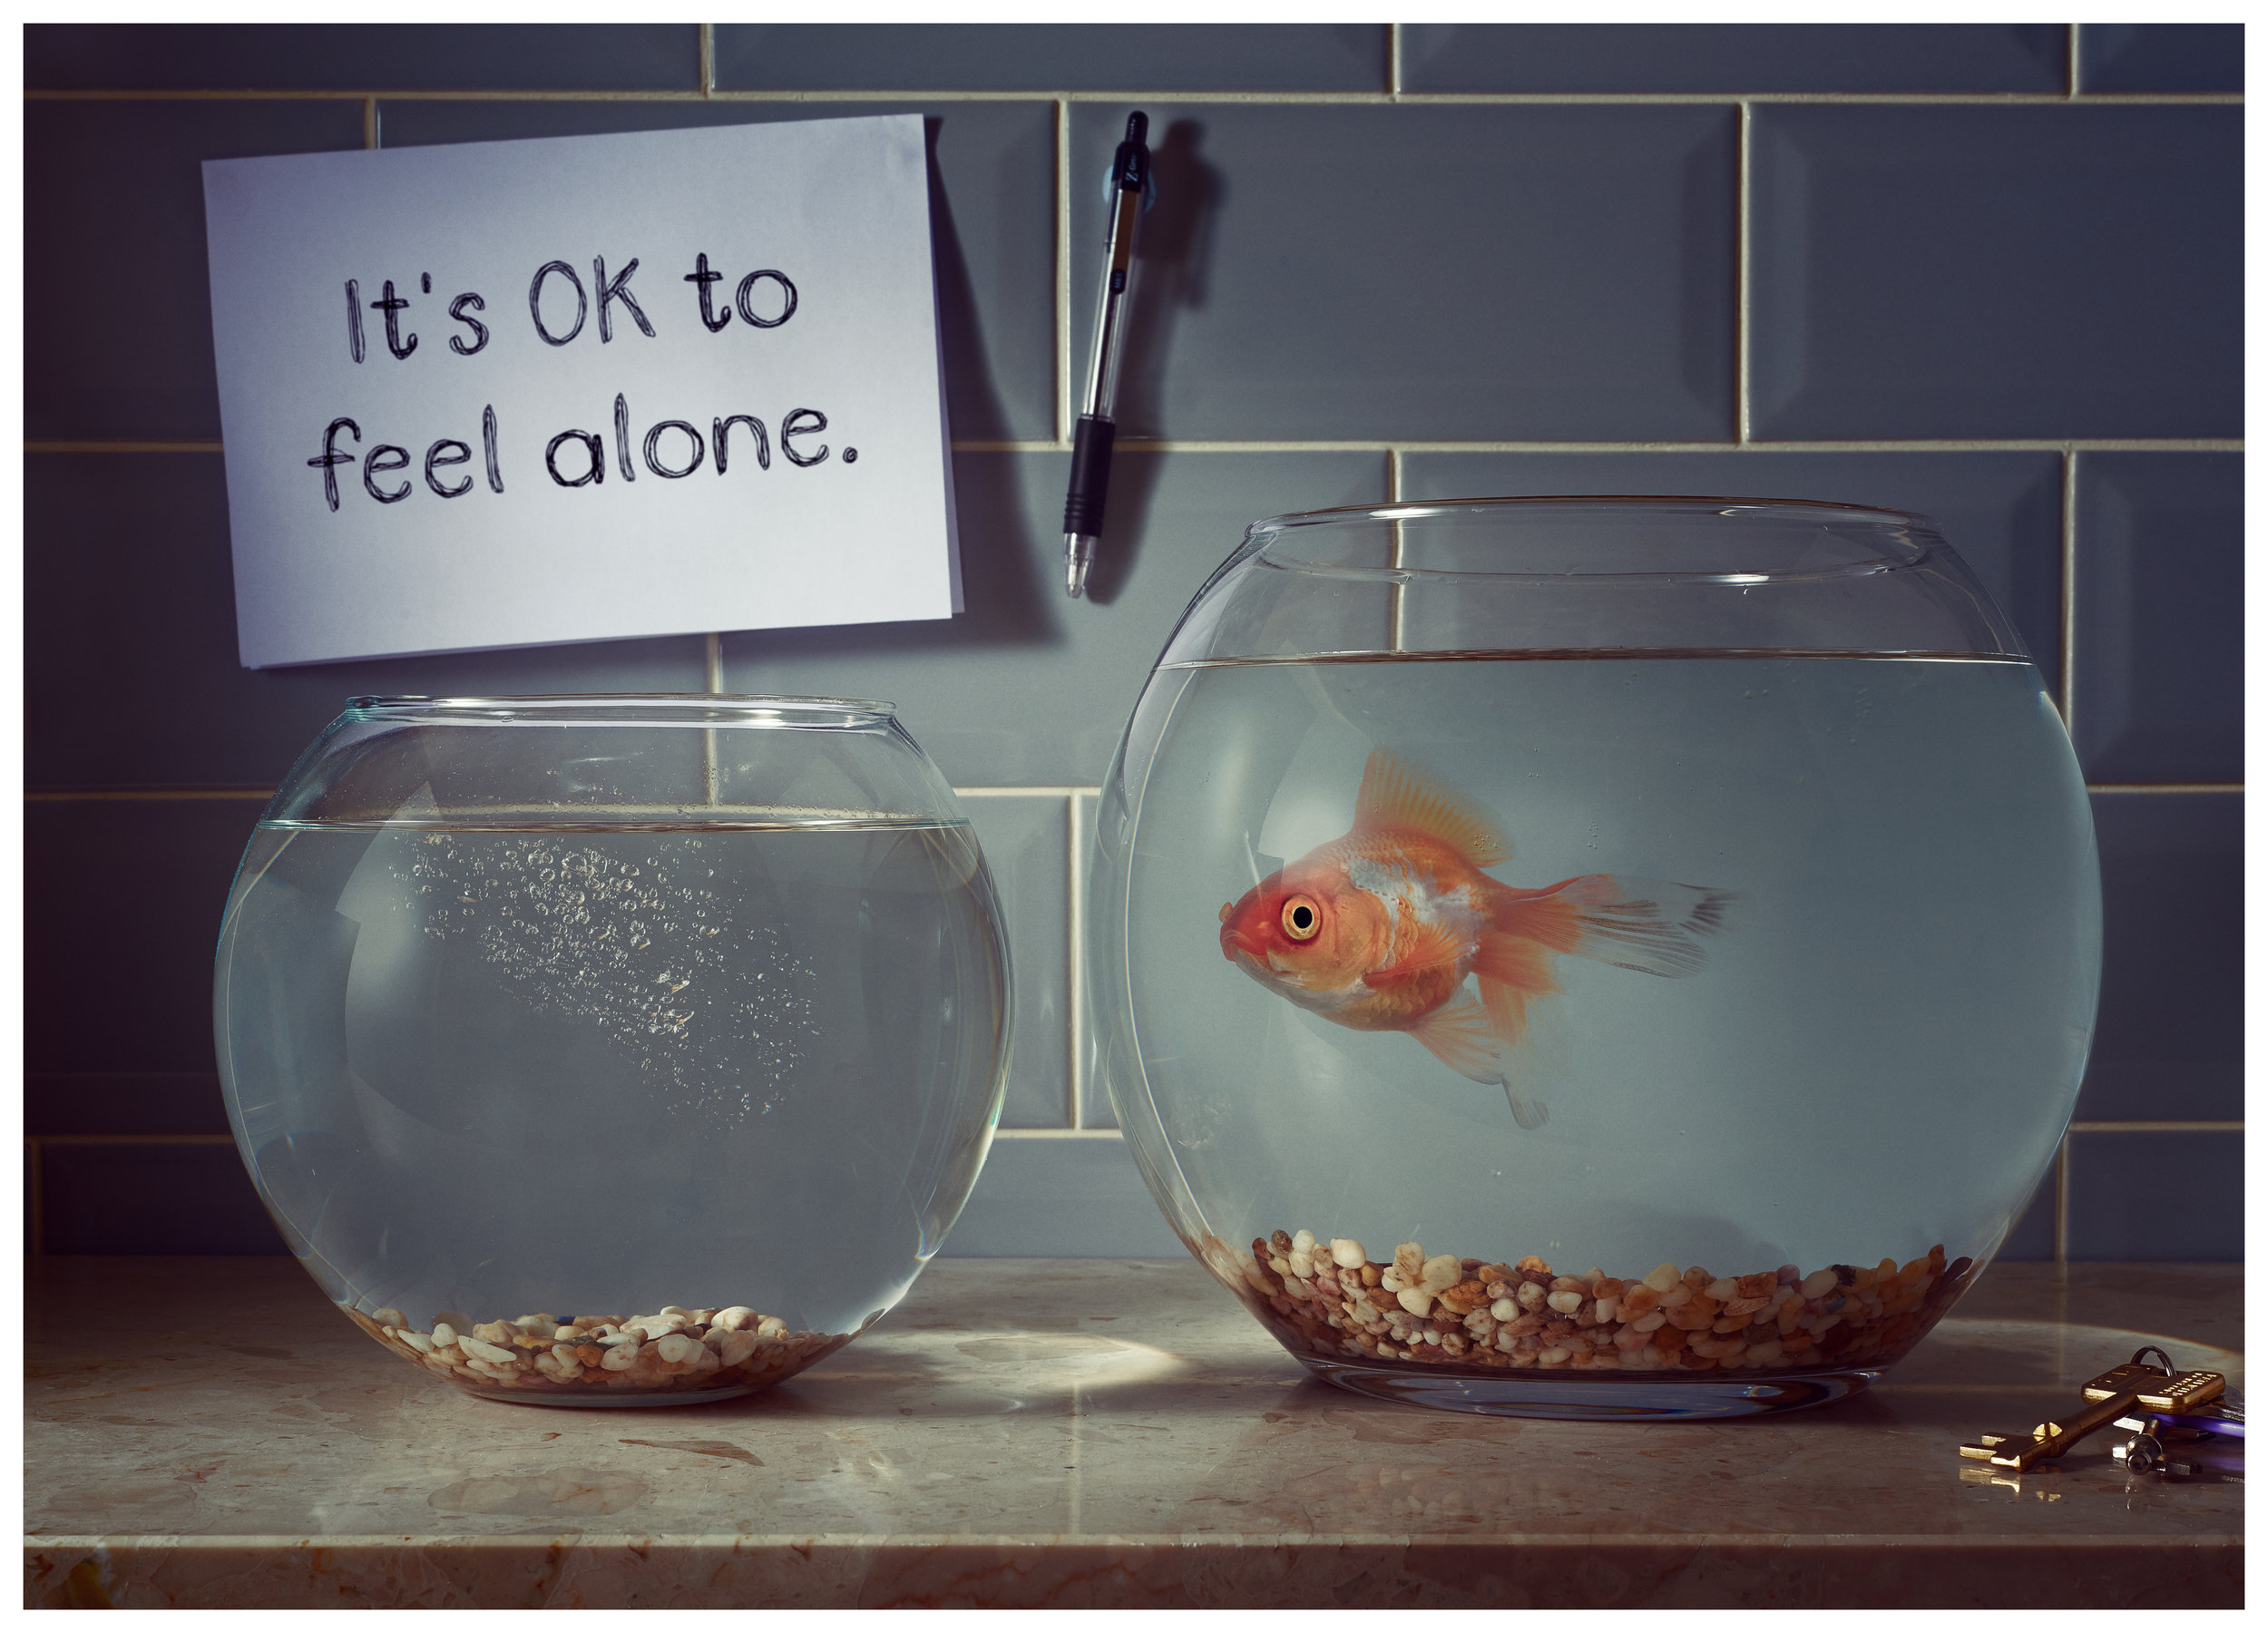 It's OK to feel alone.